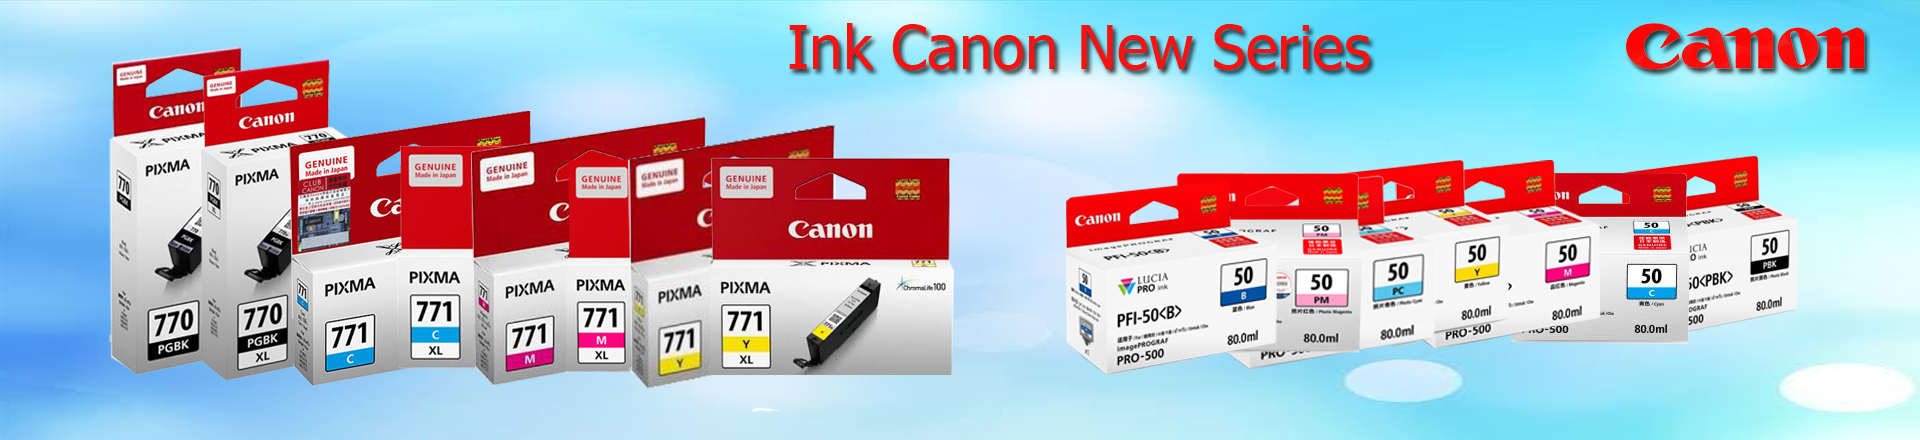 All New Ink Canon